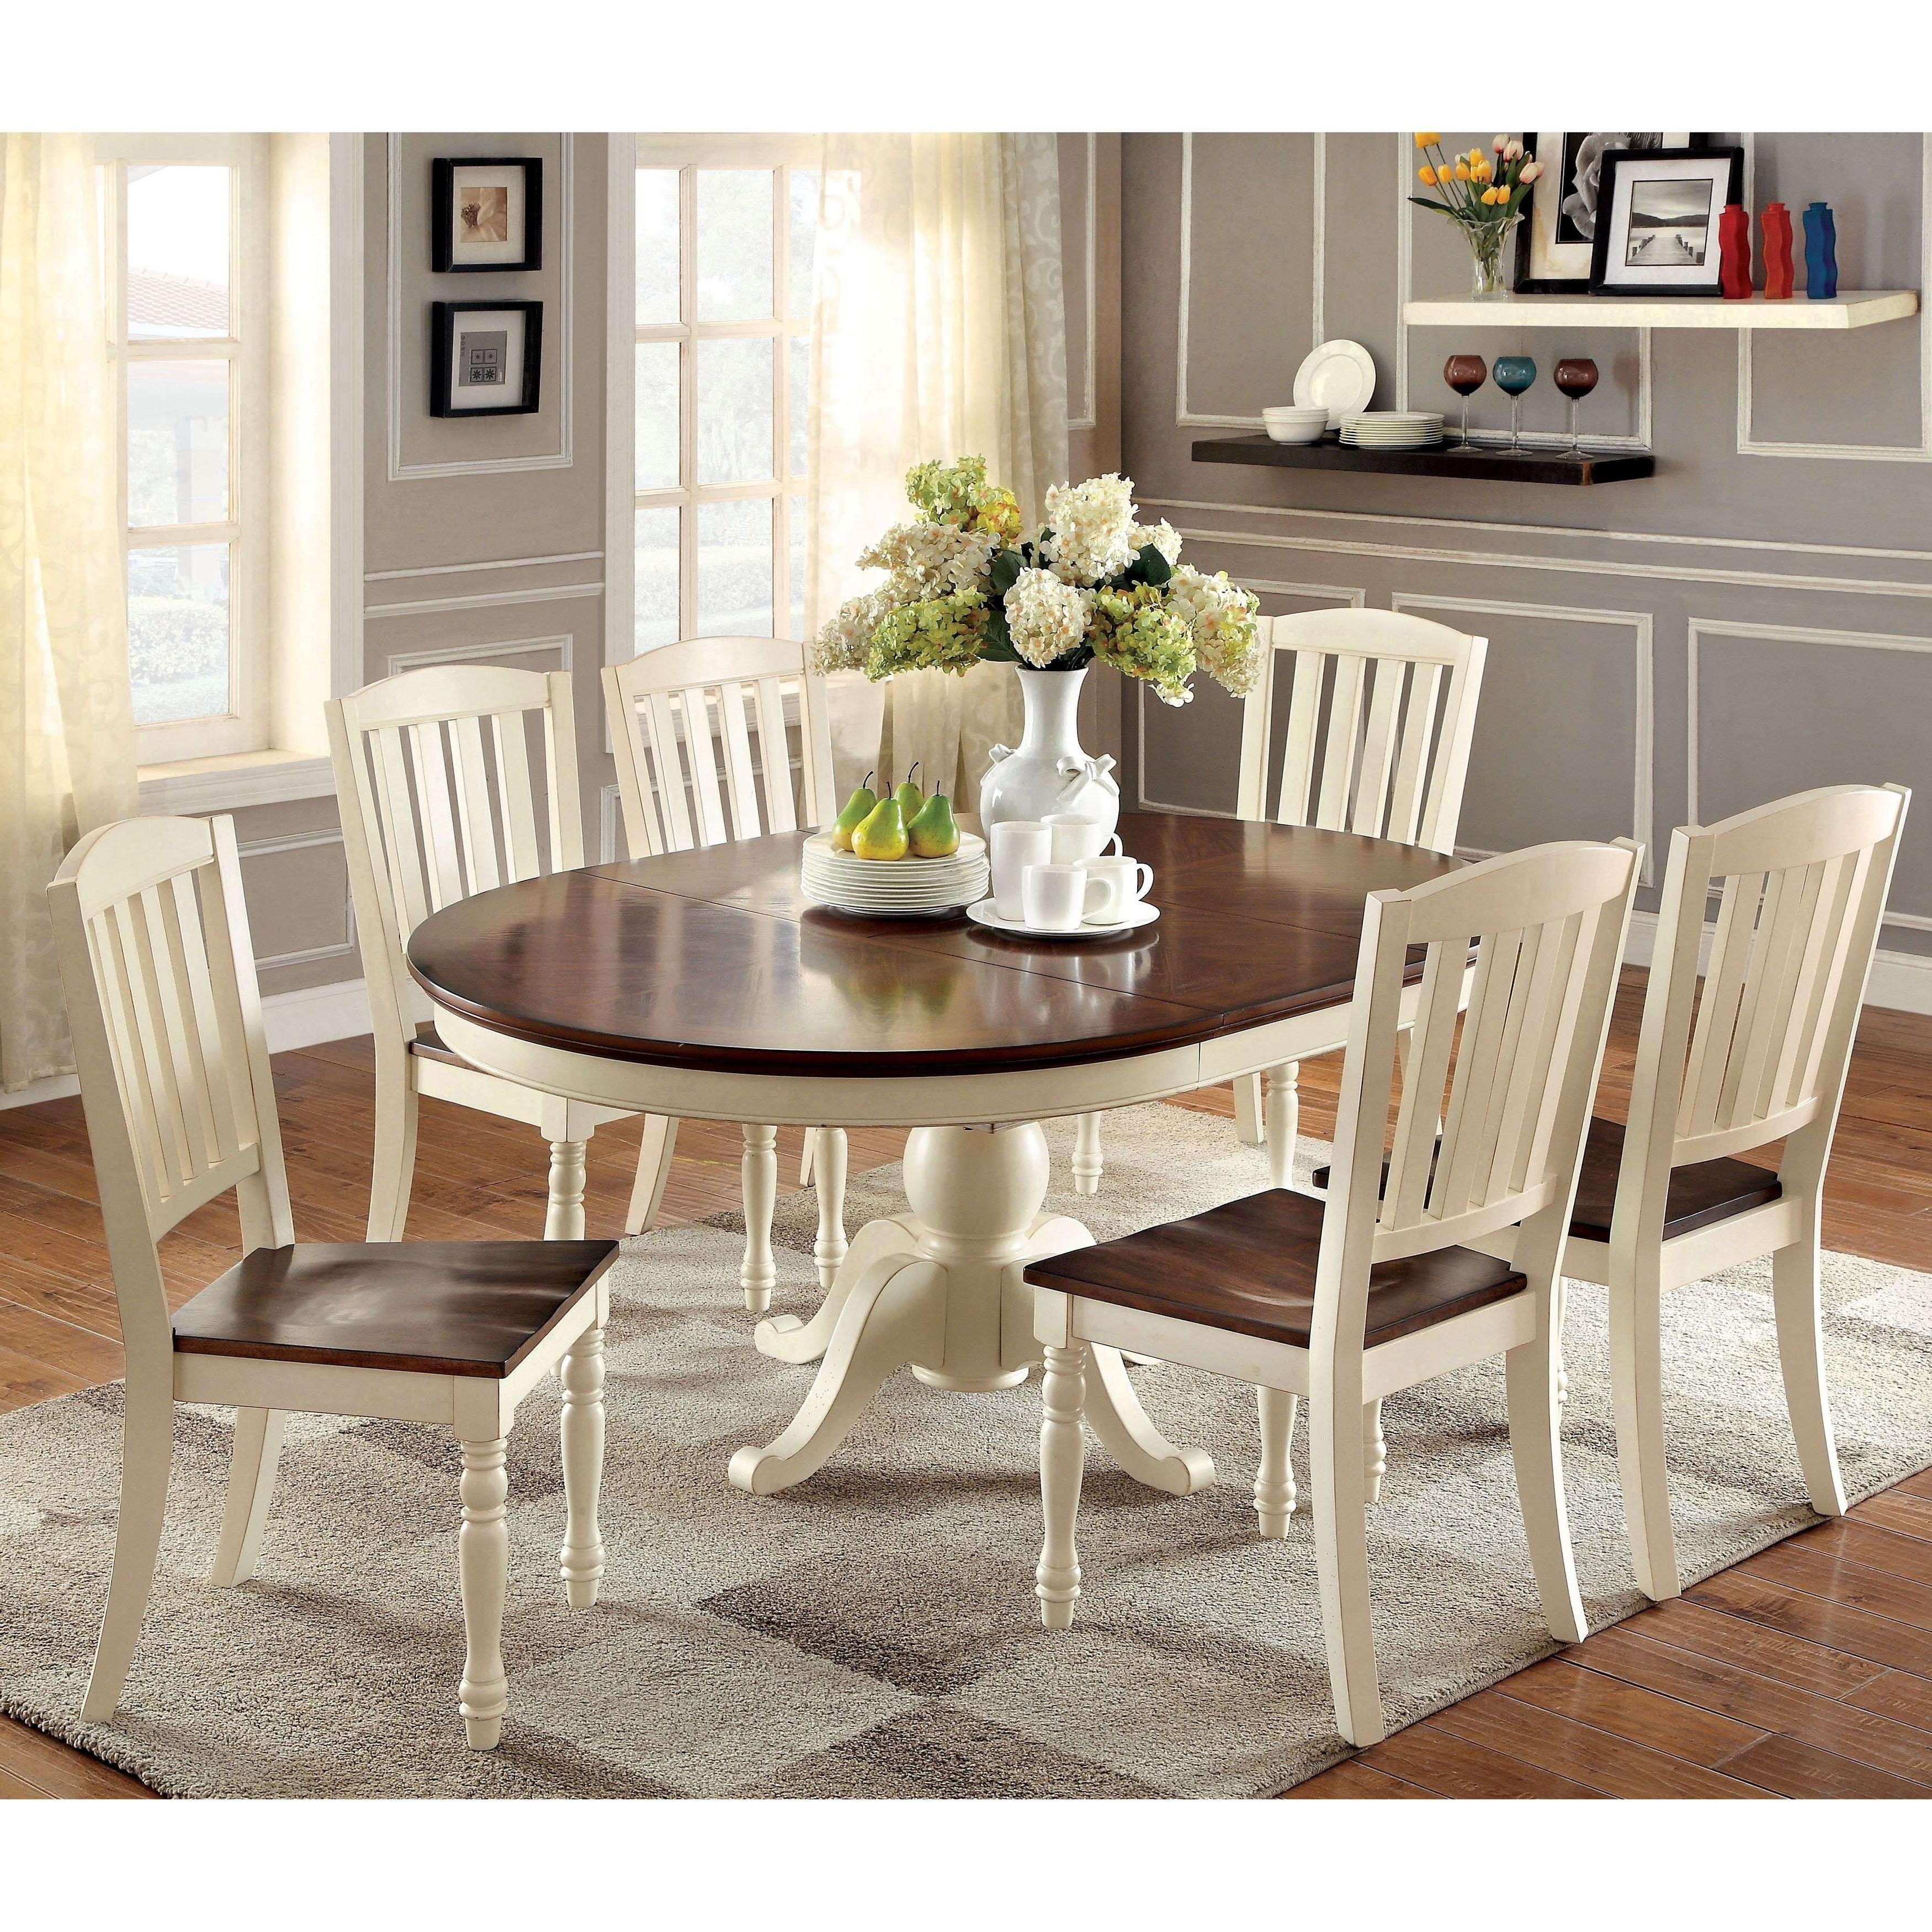 Fashionable Large Round Extending Dining Table Fresh Small Round Dining Tables In Small Round Extending Dining Tables (View 10 of 25)